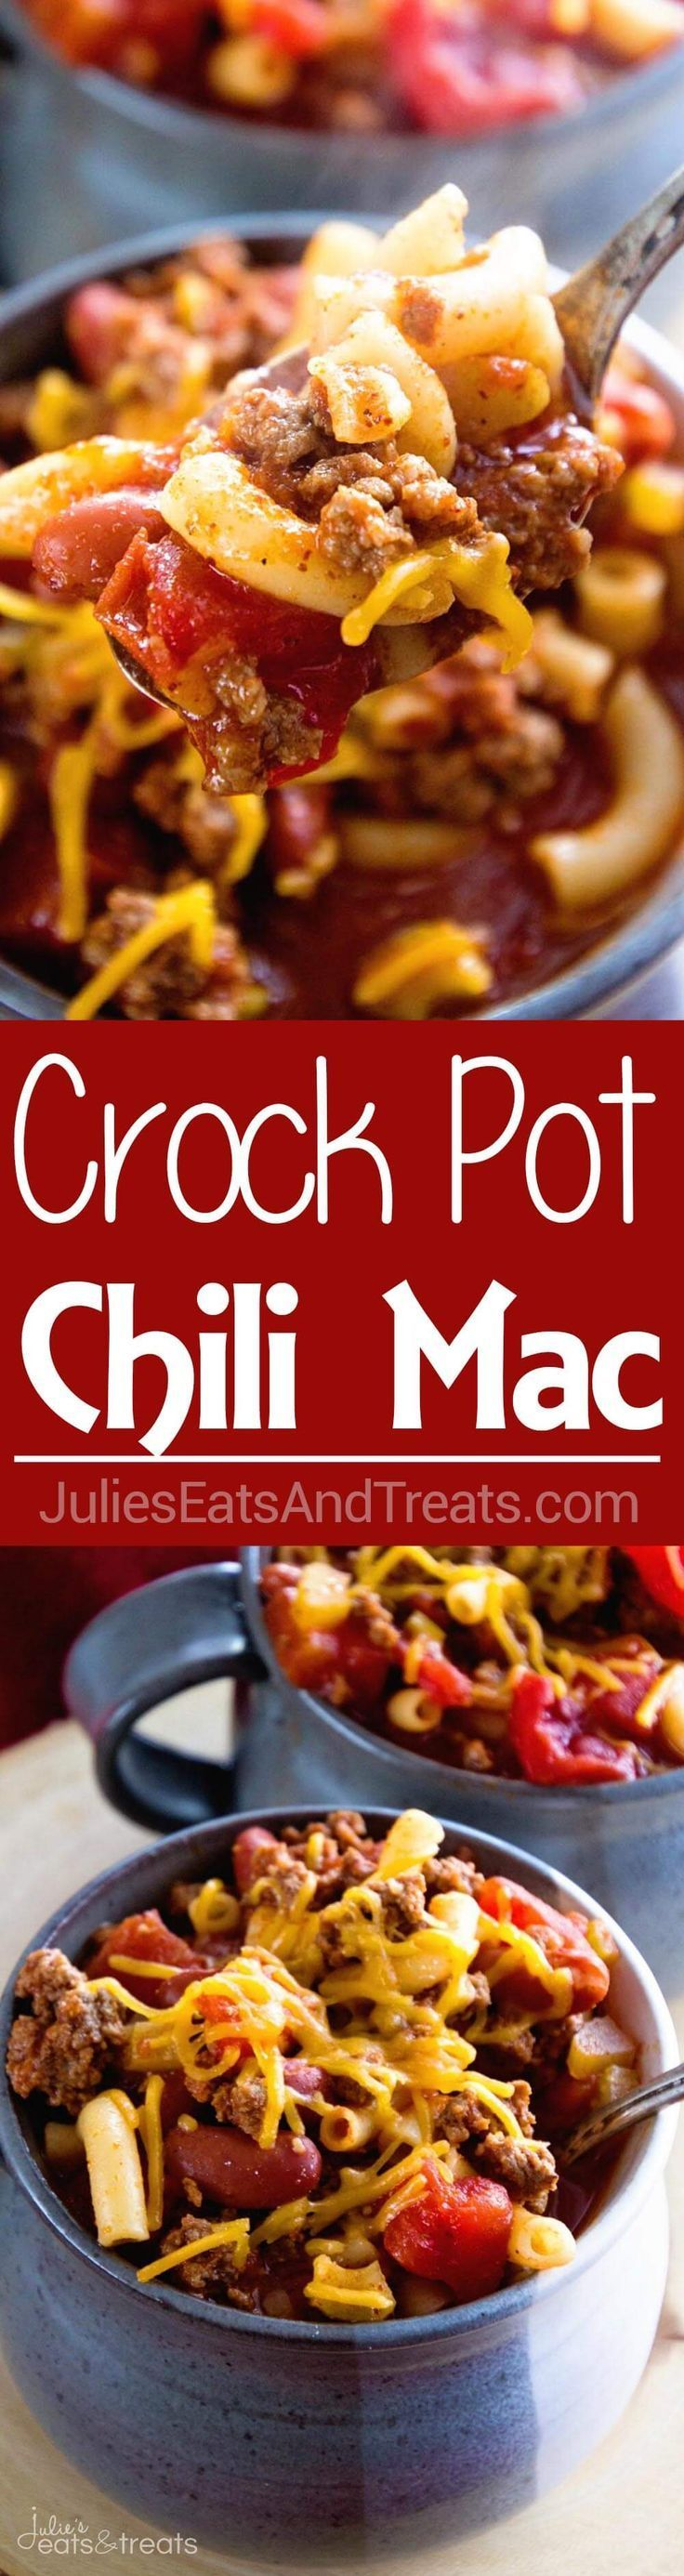 Crock Pot Hearty Chili Mac Recipe ~ Delicious Chili Slow Cooked All Day Long and Then Finished Off with Pasta! Hearty, Comforting Meal for Dinner! via @julieseats